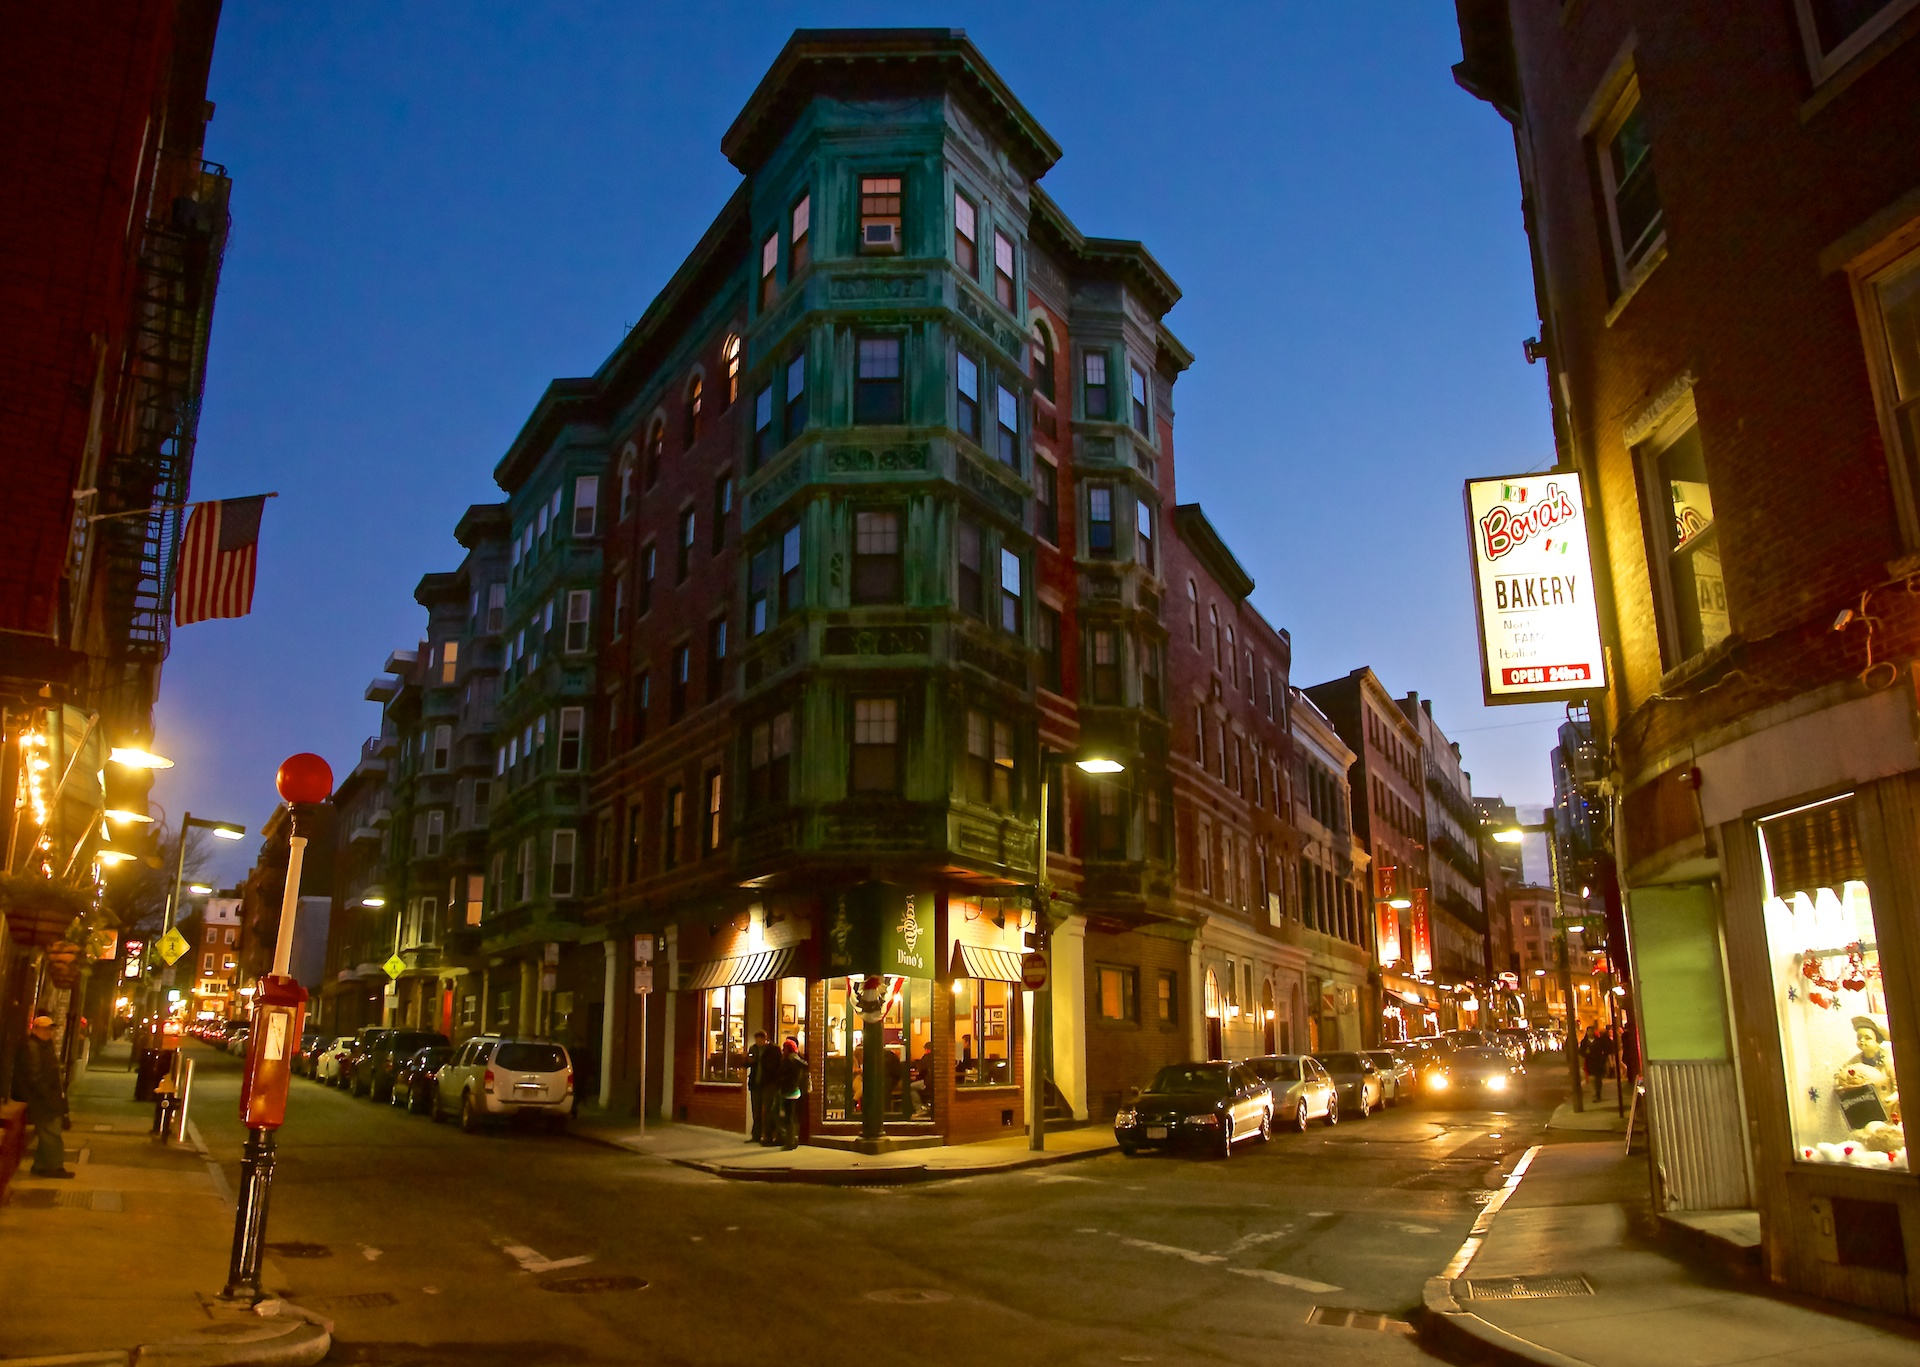 North-End-Architecture-at-Corner-of-Salem-and-Prince-Streets-at-Night-January-2013-Photo-by-Matt-Conti